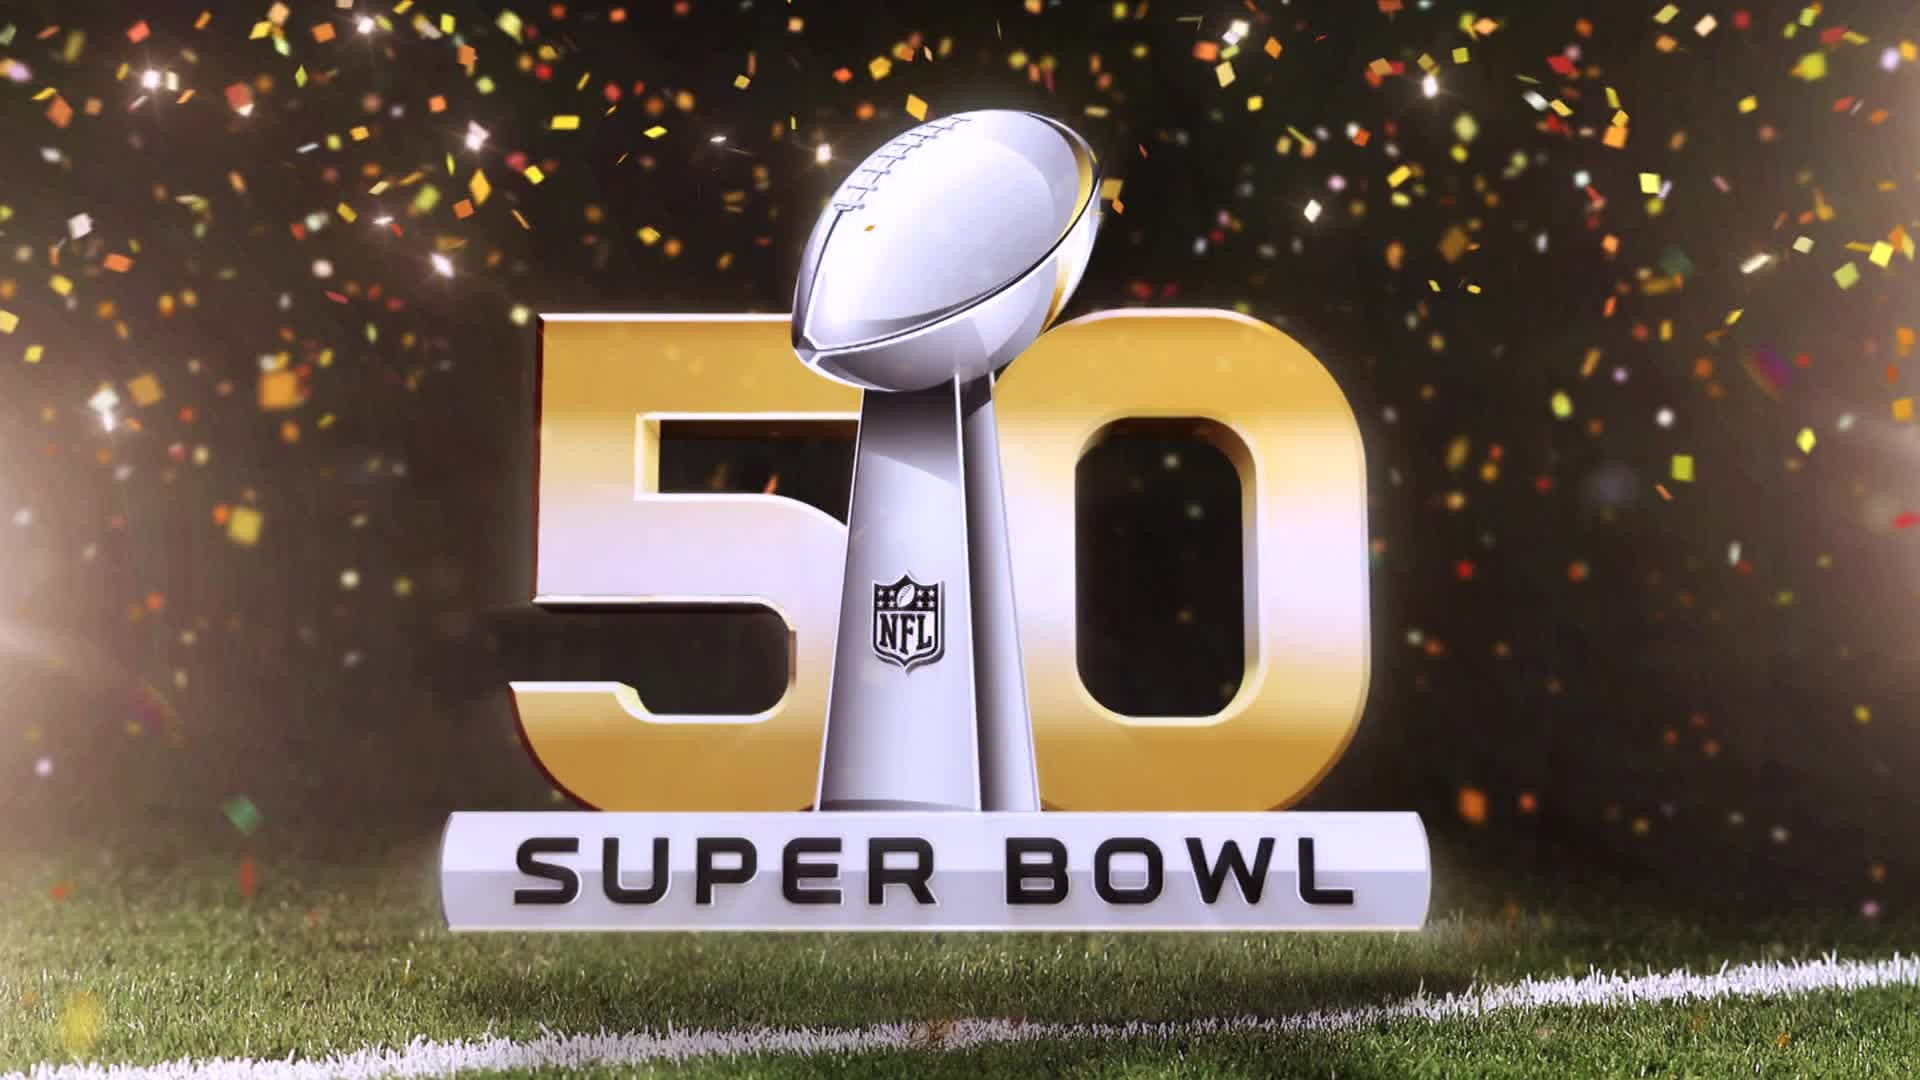 1920x1080 Backgrounds In High Quality: Super Bowl 2016 by Lilliana Byler, 20/07/